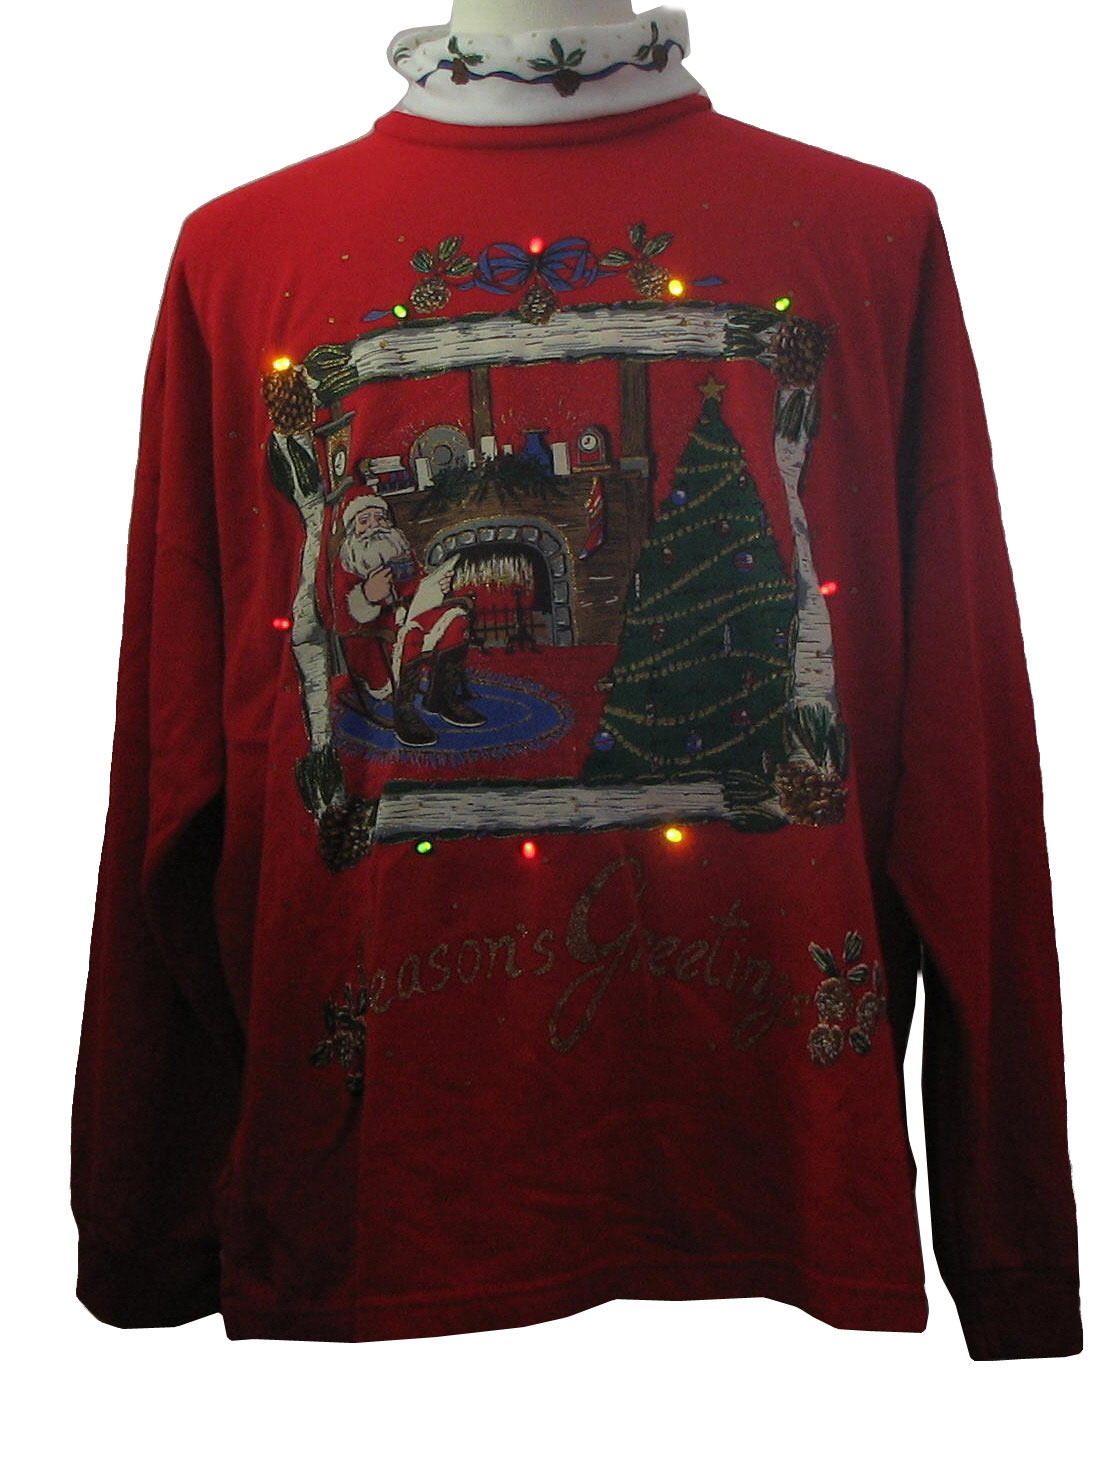 1980s Vintage Ugly Christmas Sweatshirt With Added Multi